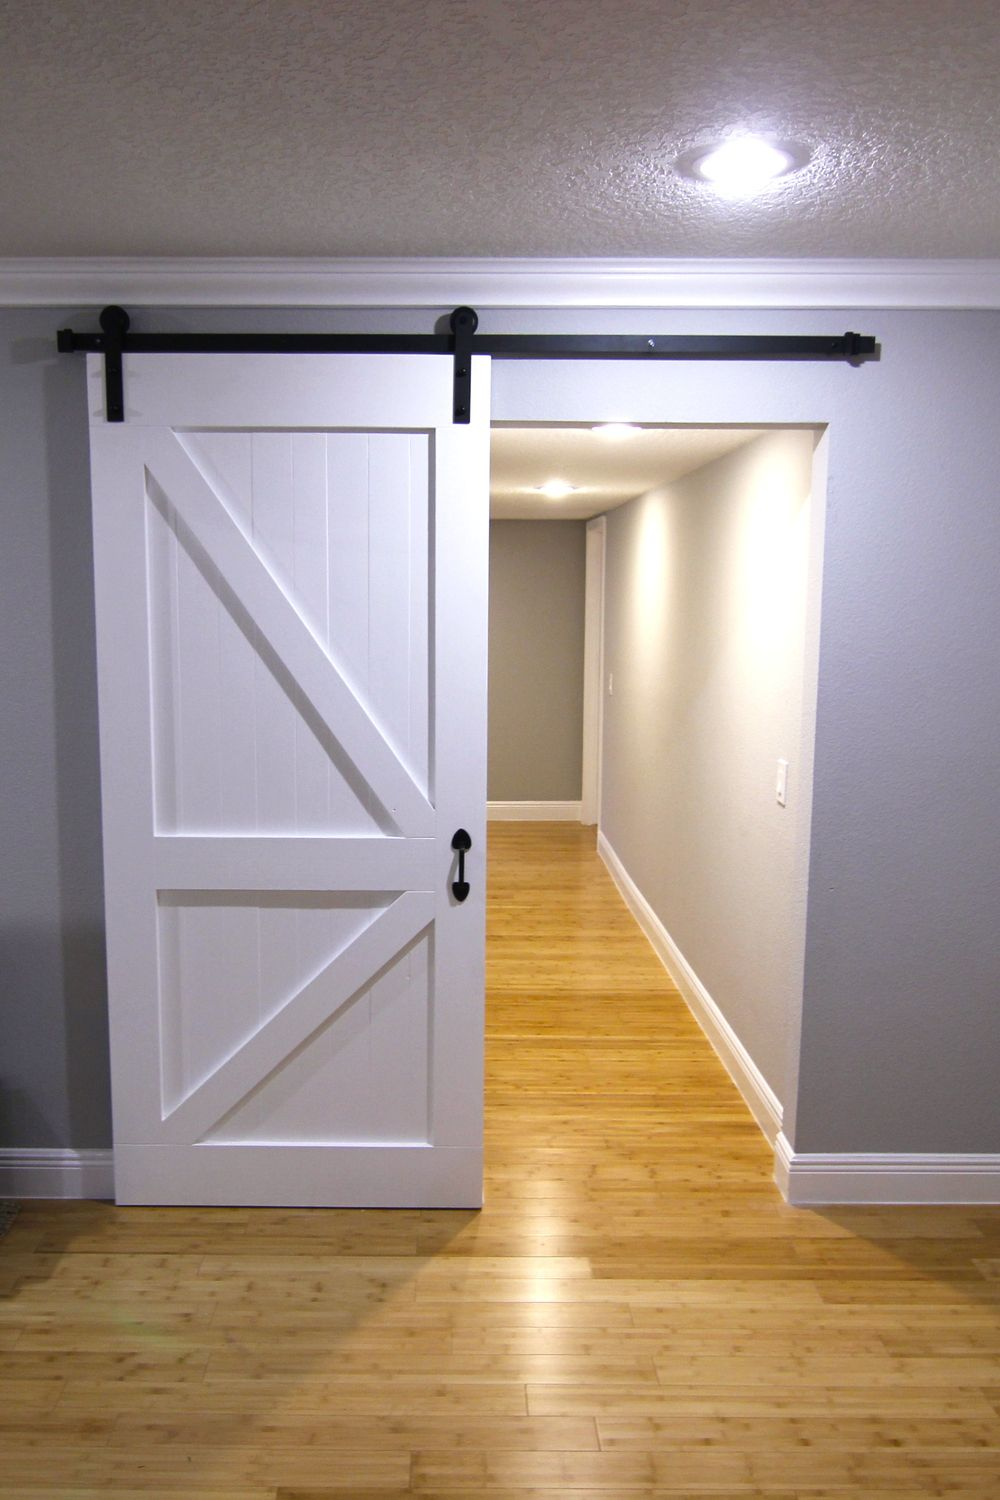 barn door design for bypass closet doors. N.V. | Home | Pinterest ...